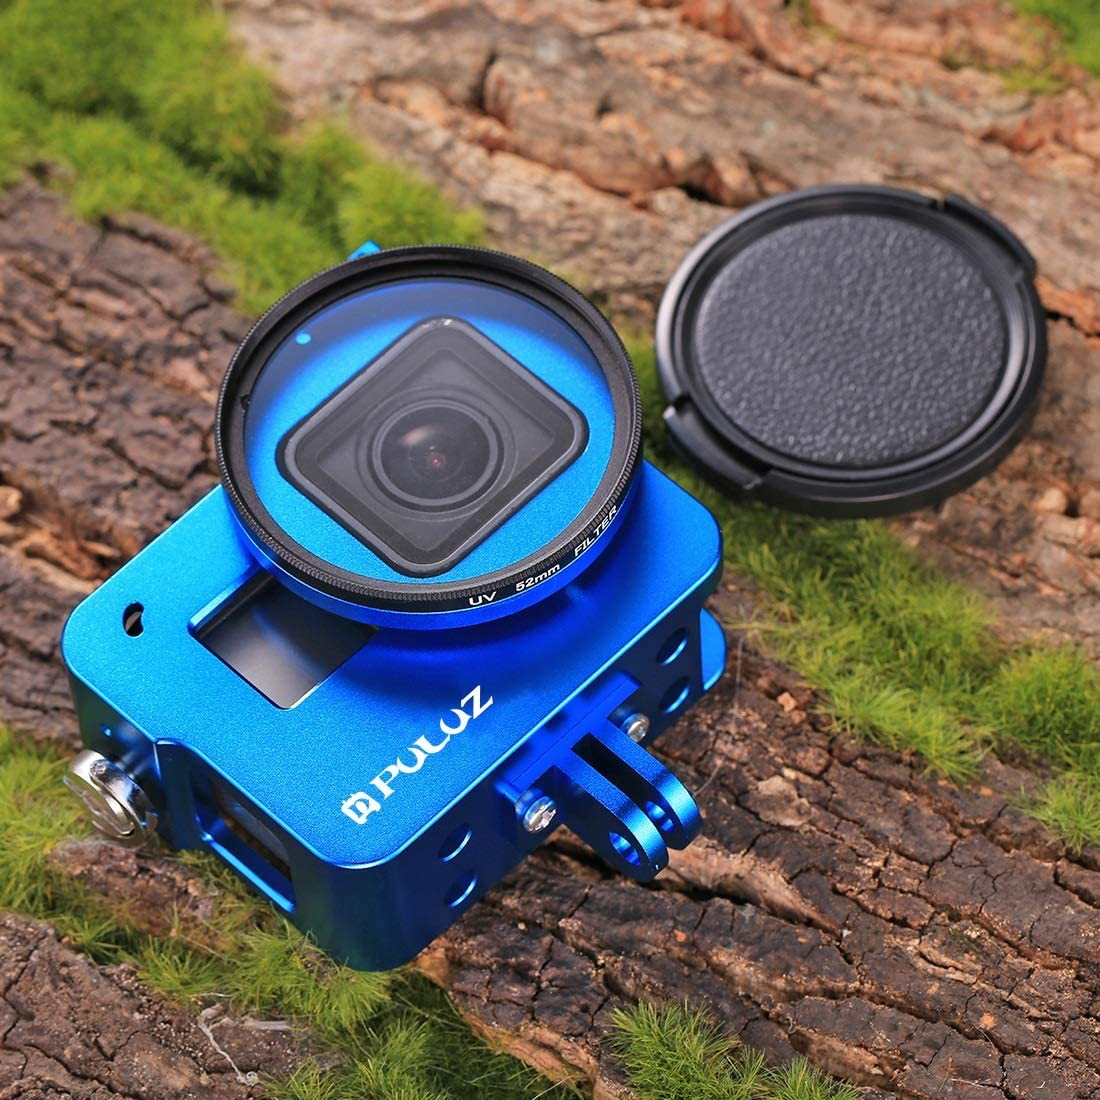 //7 Black //6//5 2018 VKeyueDa Housing Shell CNC Aluminum Alloy Protective Cage with 52mm UV Lens for GoPro Hero VKeyueDa Color : Blue Black